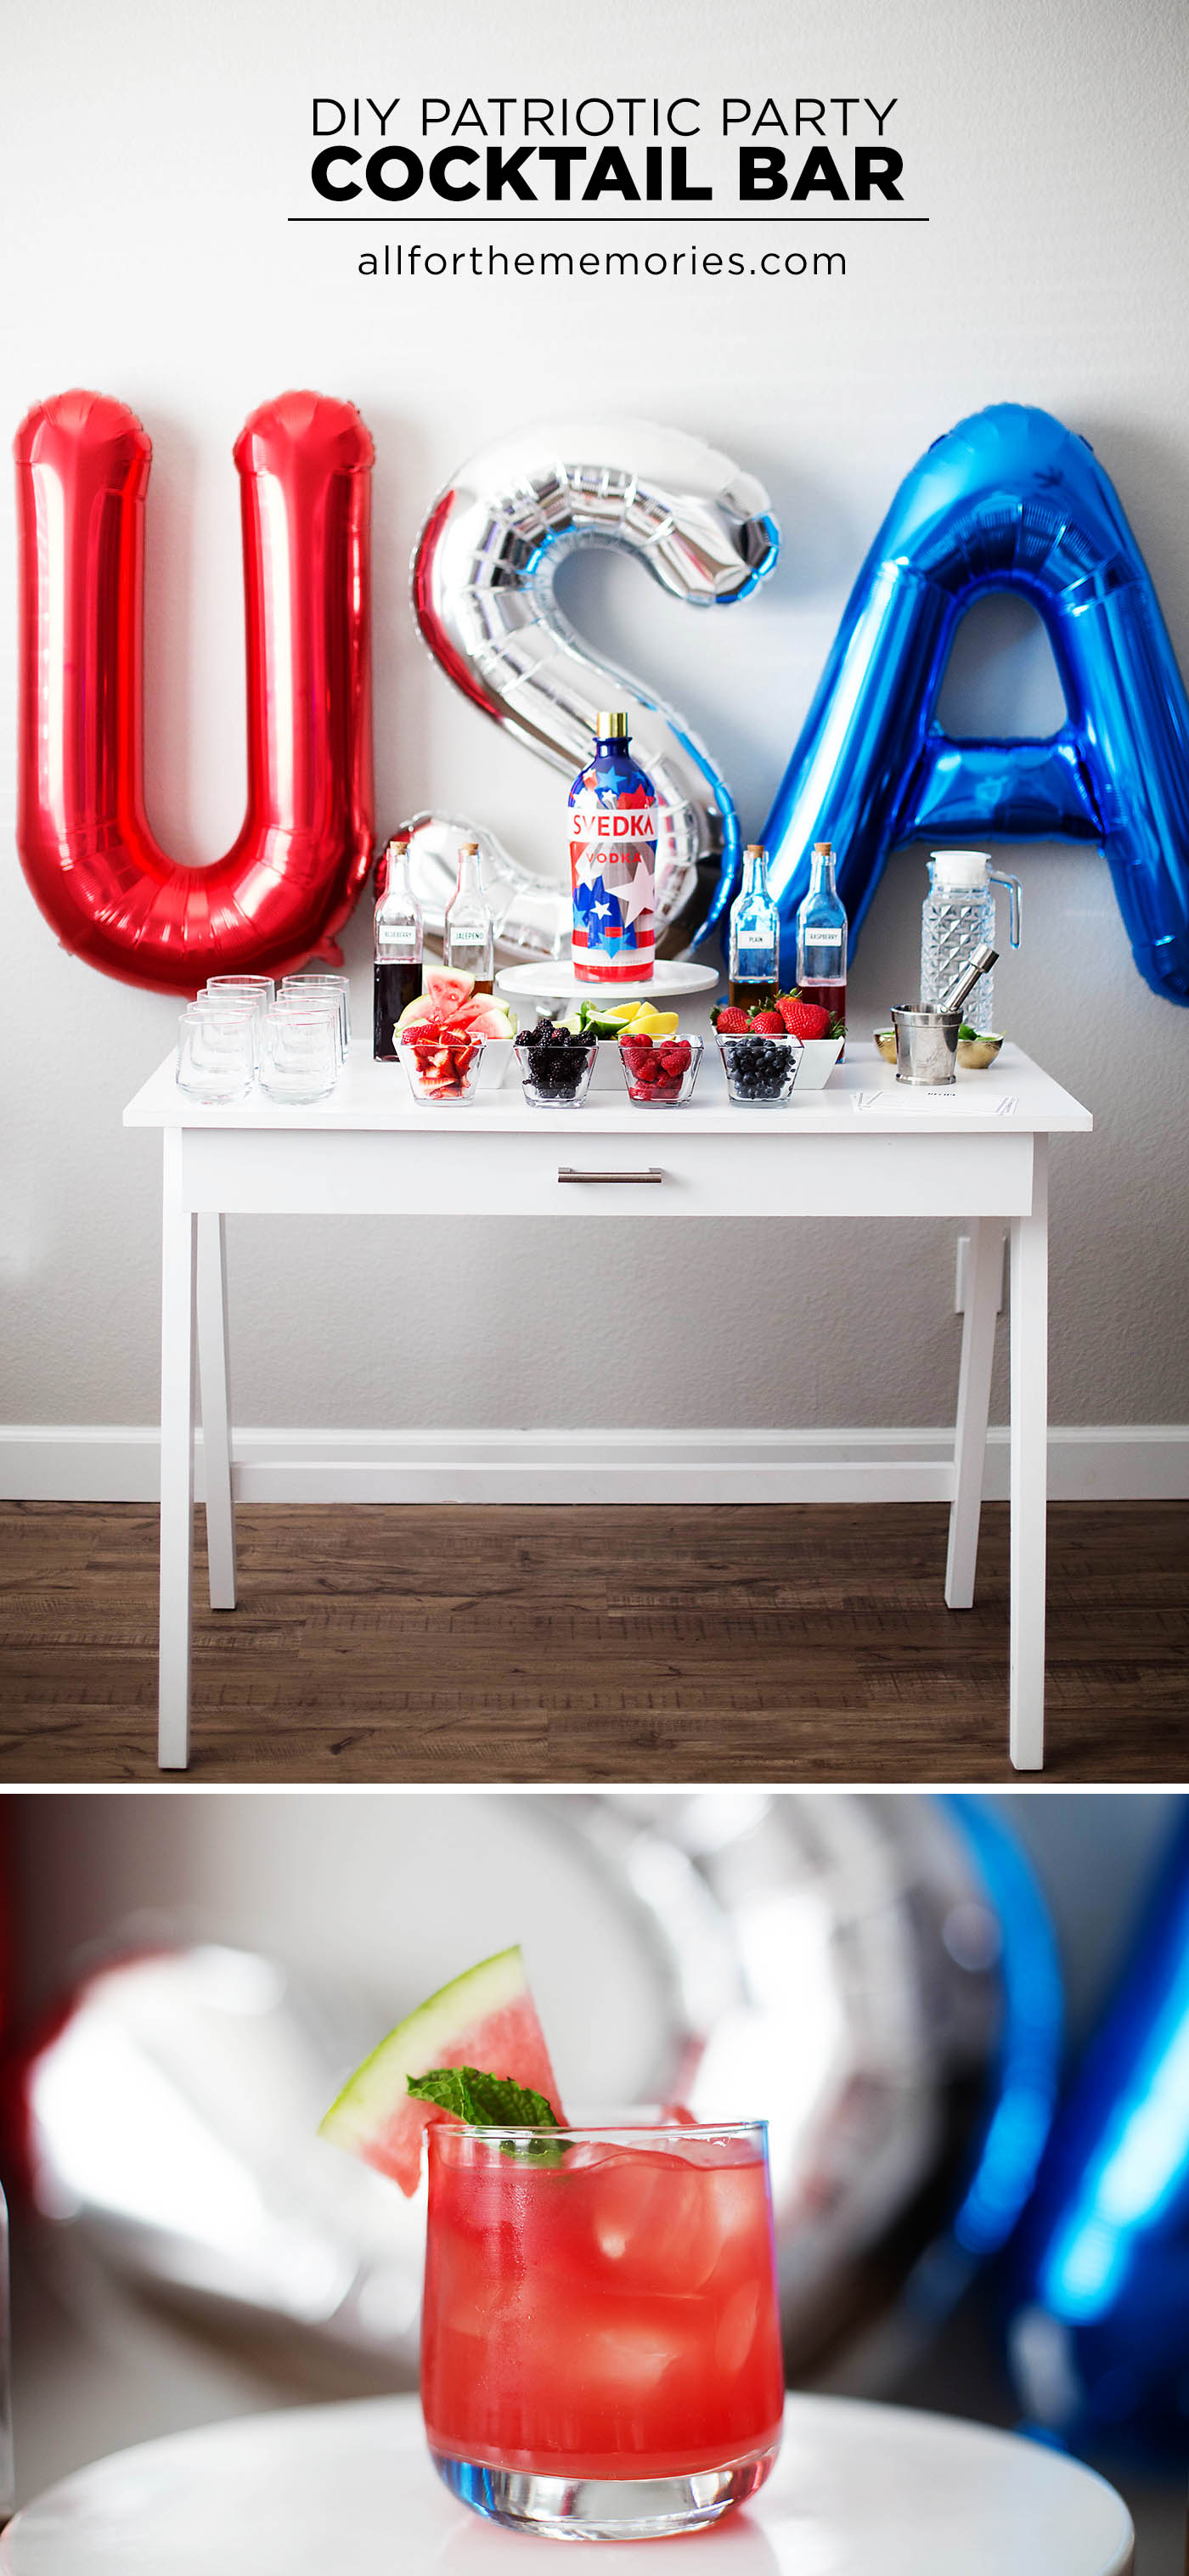 Patriotic Party DIY Cocktail Bar at allforthememories.com